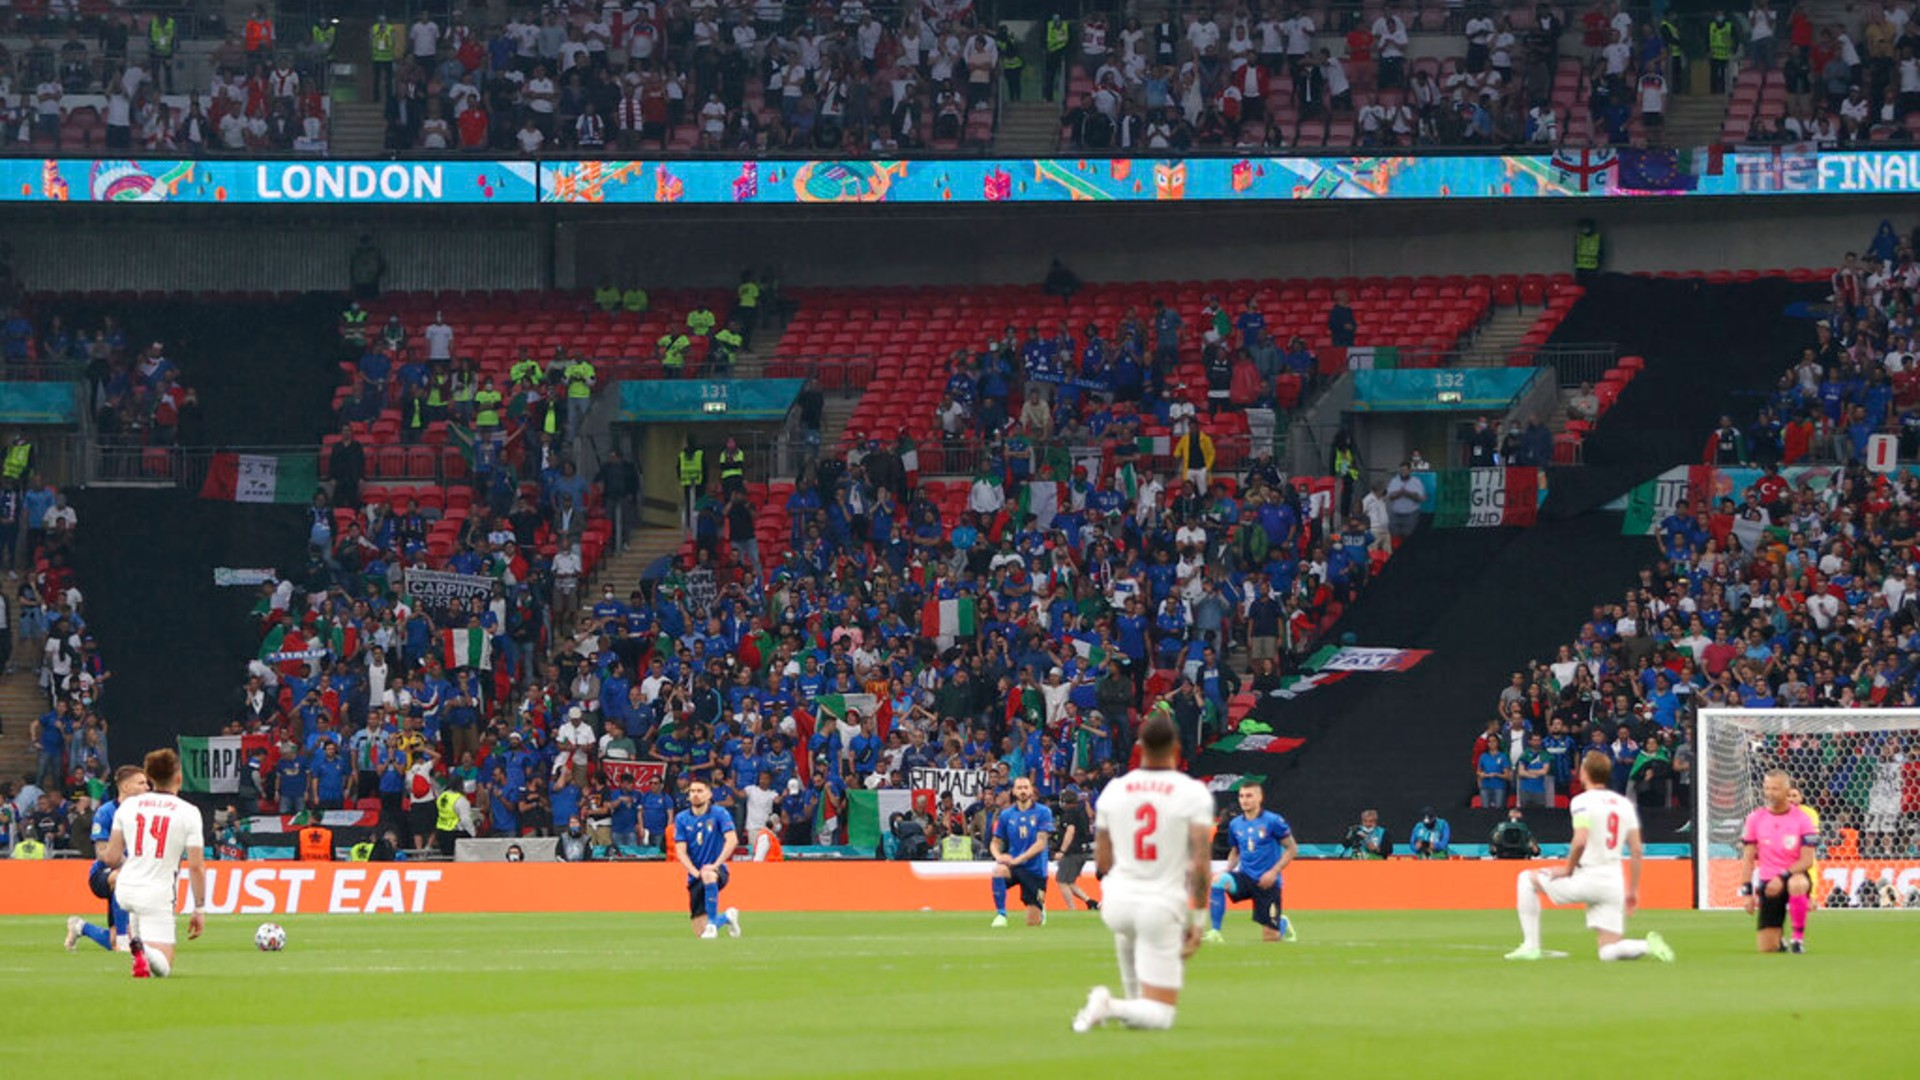 The players take a knee before the Euro 2020 soccer championship final match between England and Italy at Wembley stadium in London, Sunday, July 11, 2021. (Carl Recine/Pool Photo via AP)